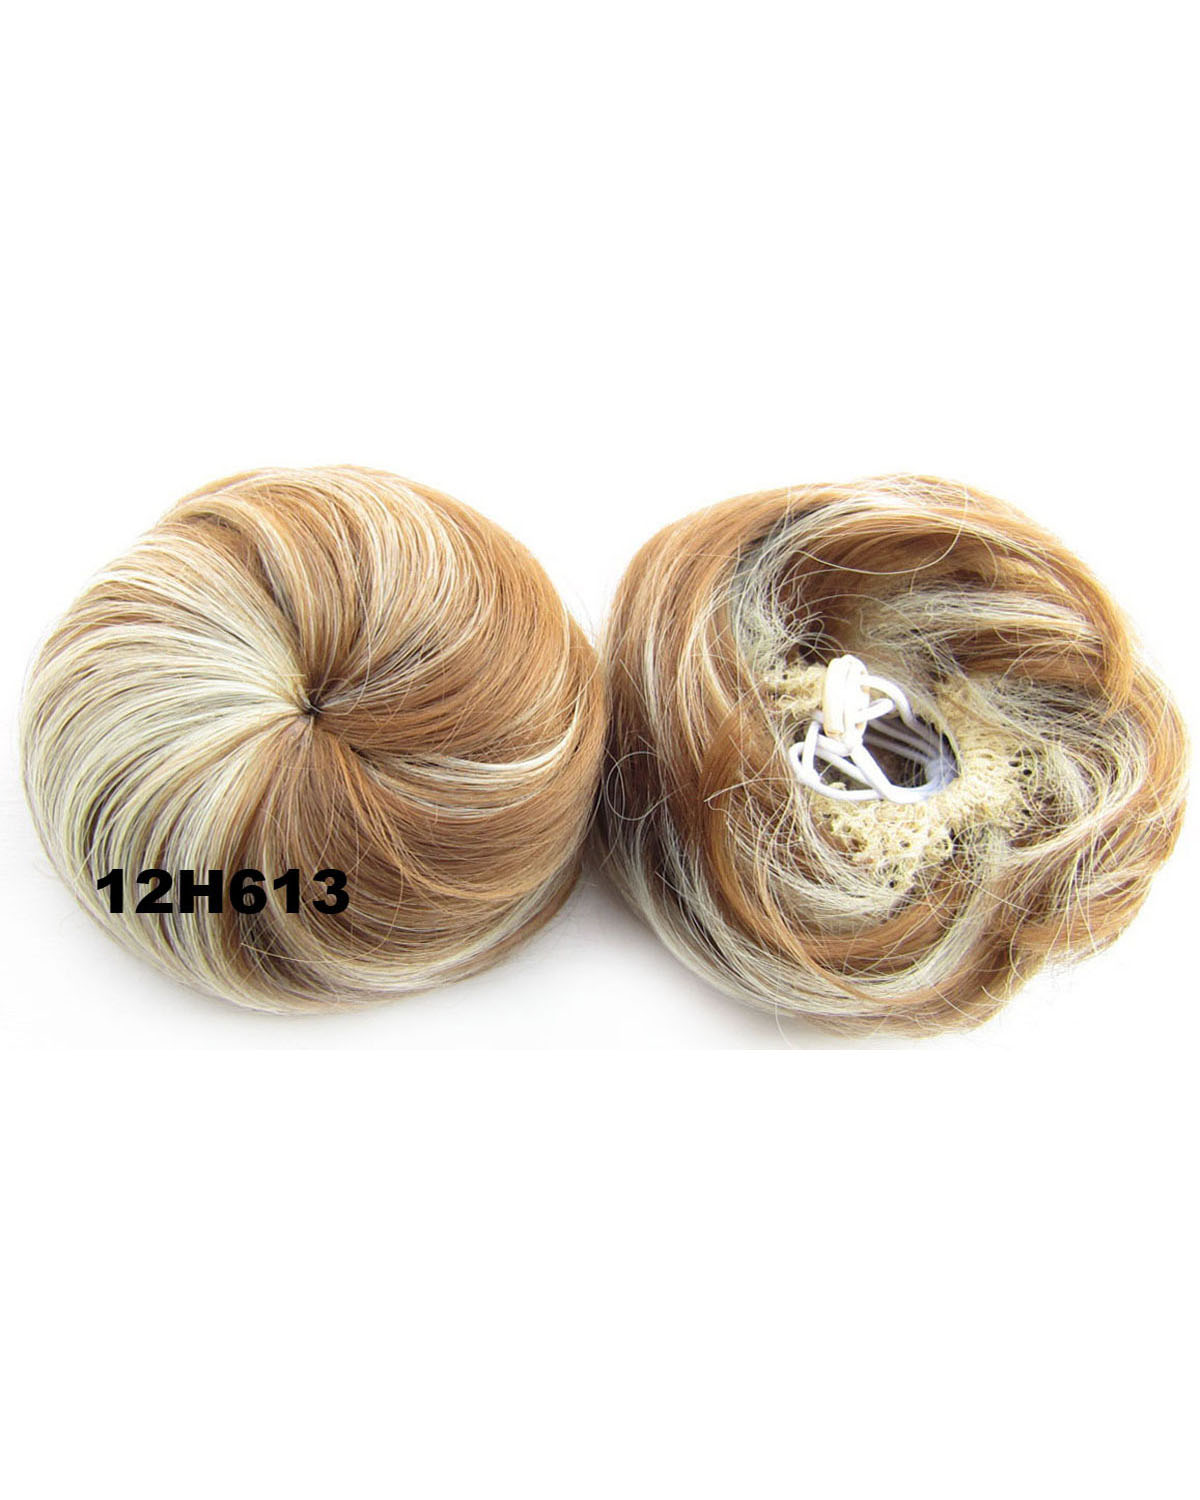 Ladies Trendy Straight Short Hair Buns Drawstring Synthetic Hair Extension Bride Scrunchies 12H613